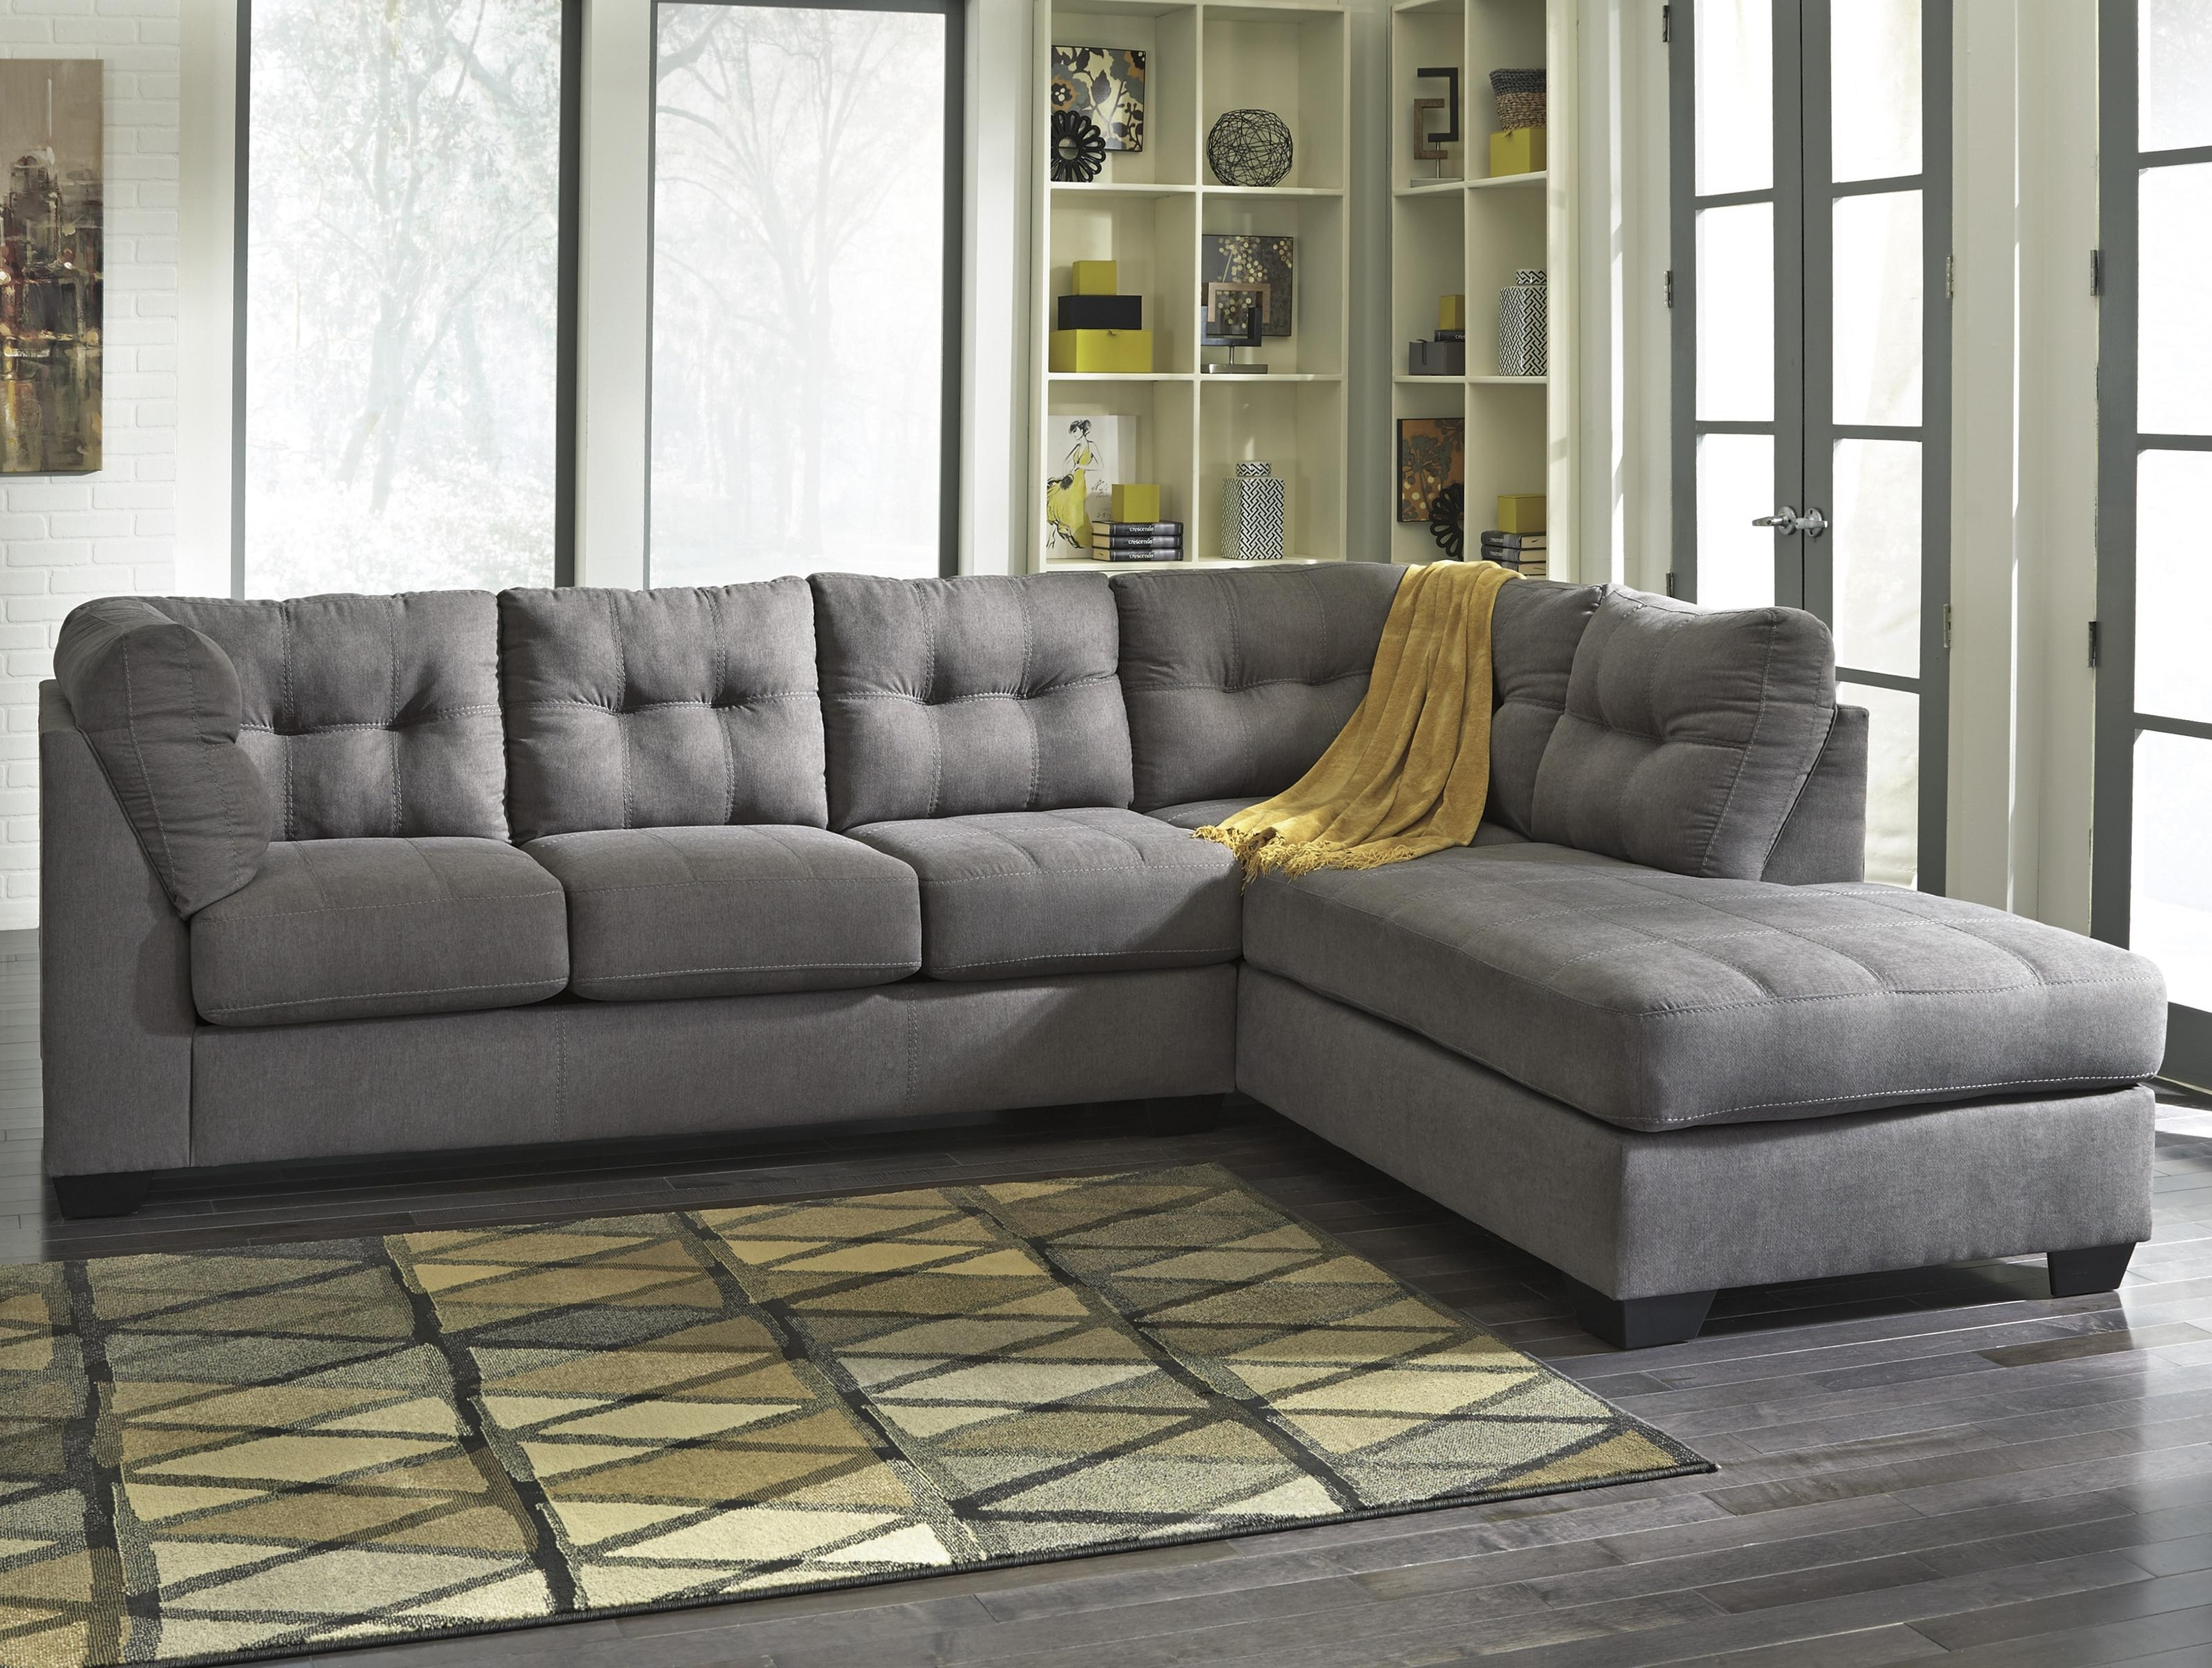 Preferred Benchcraftashley Maier – Charcoal 2 Piece Sectional With Left With Sectional Sofas At Birmingham Al (View 9 of 20)